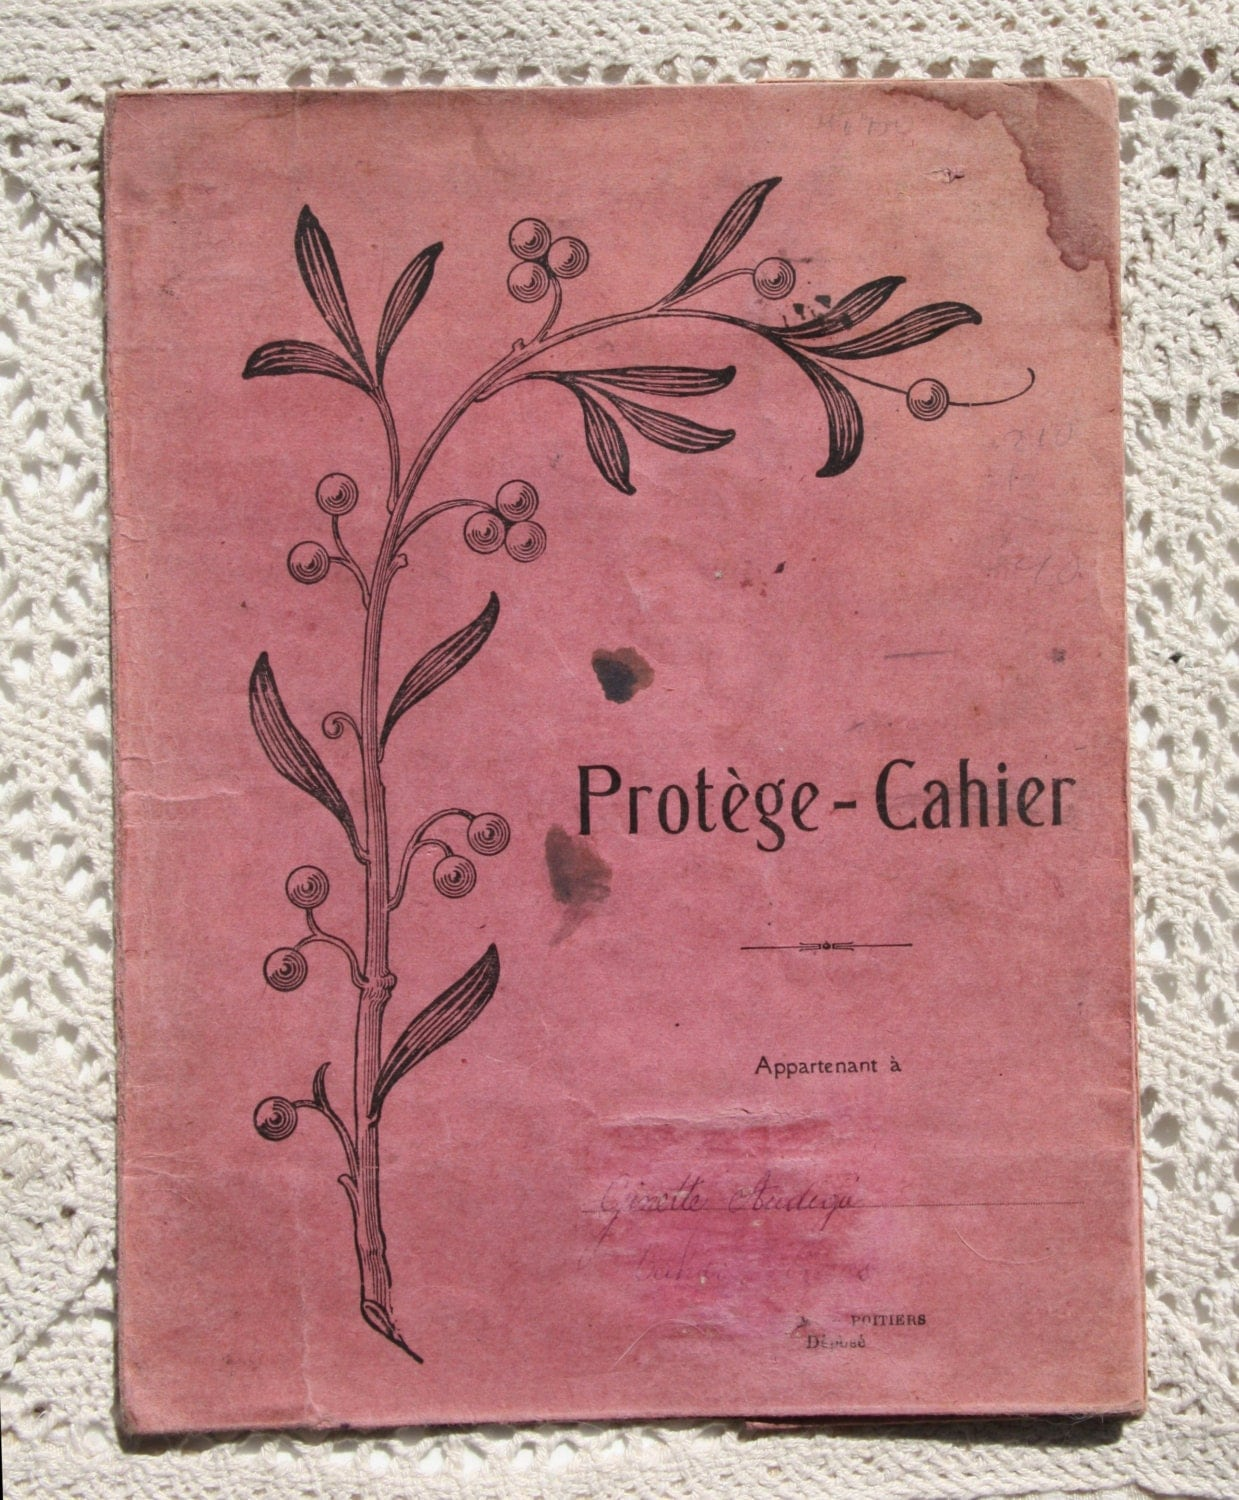 French School Book Cover : Antique exercise book cover s french primary school